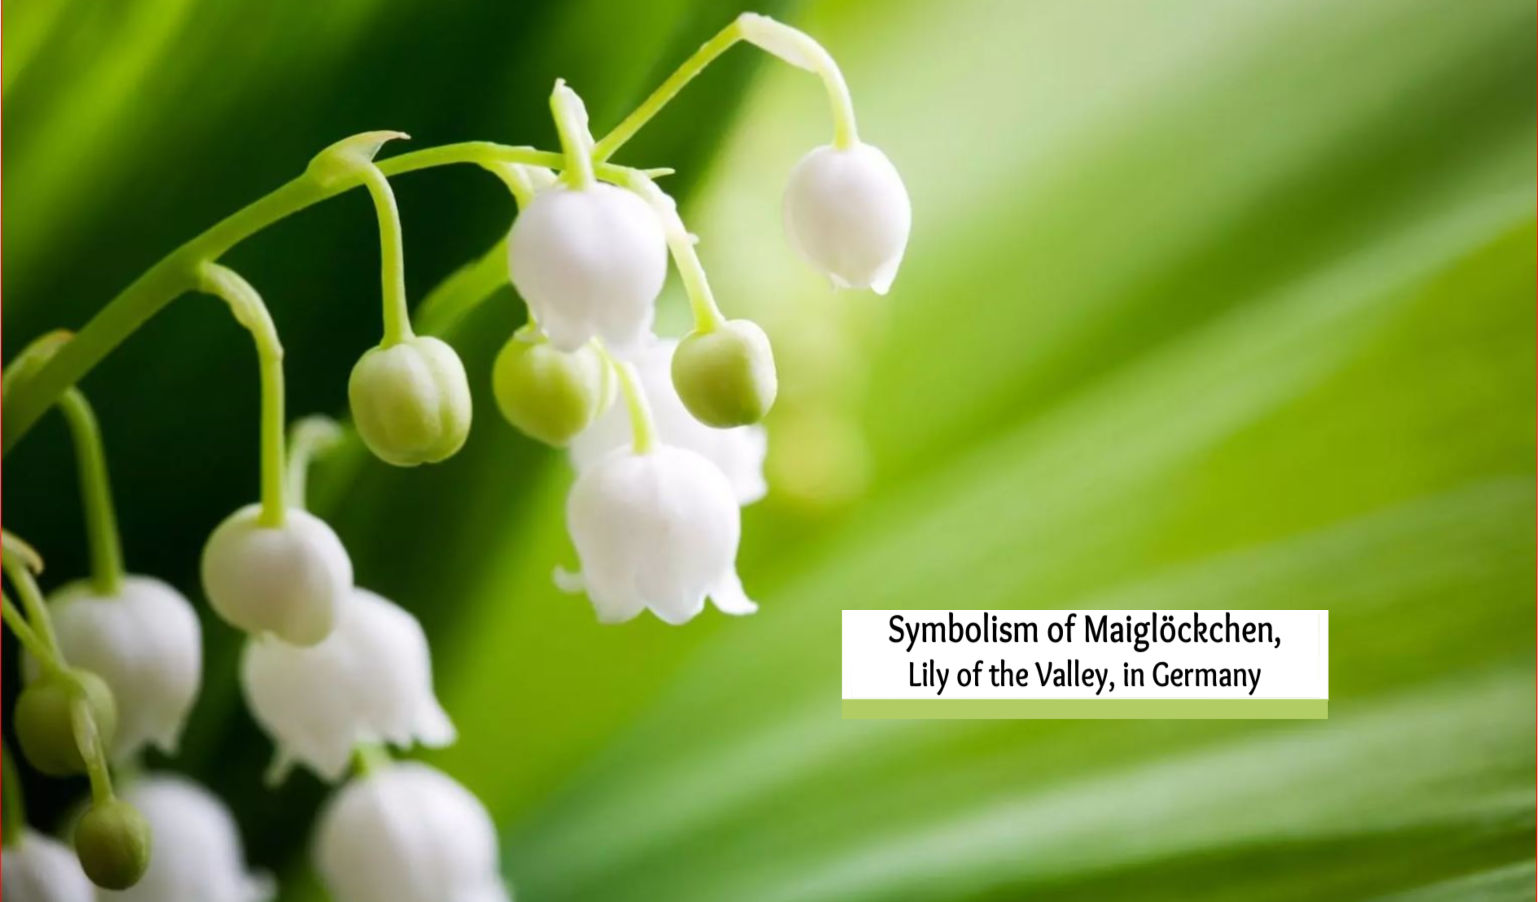 Symbolism of Maiglöckchen, Lily of the Valley in German